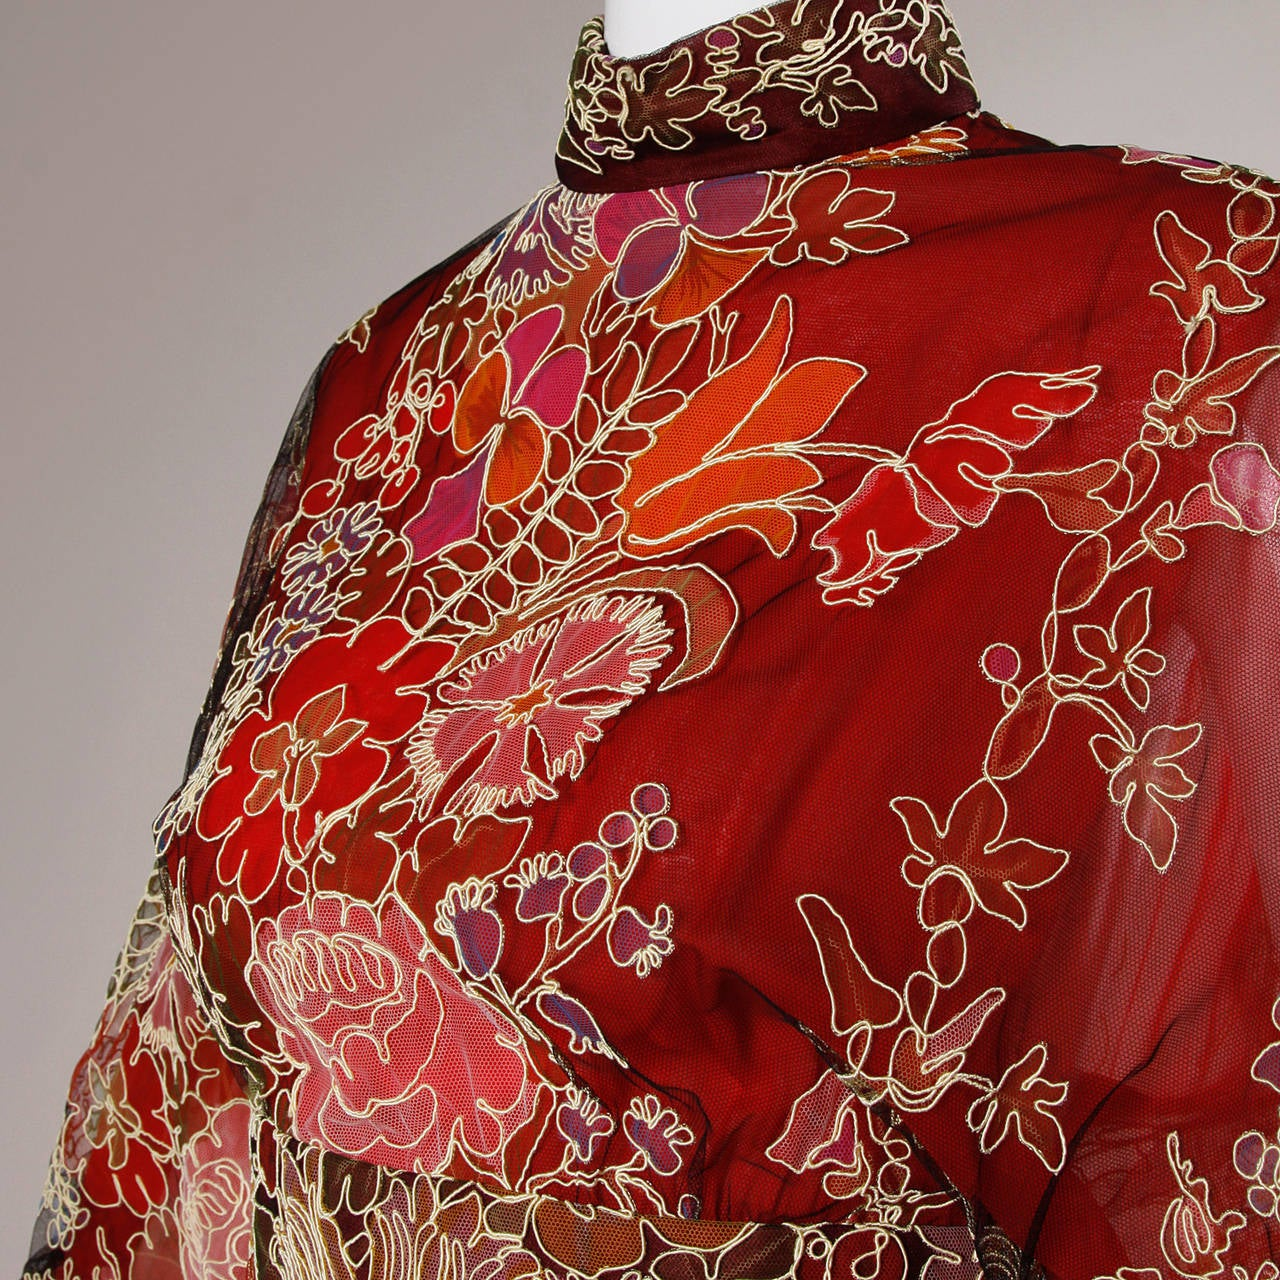 Women's Donald Brooks Unworn Vintage 1970s Hand Painted Tulle Embroidered Dress For Sale